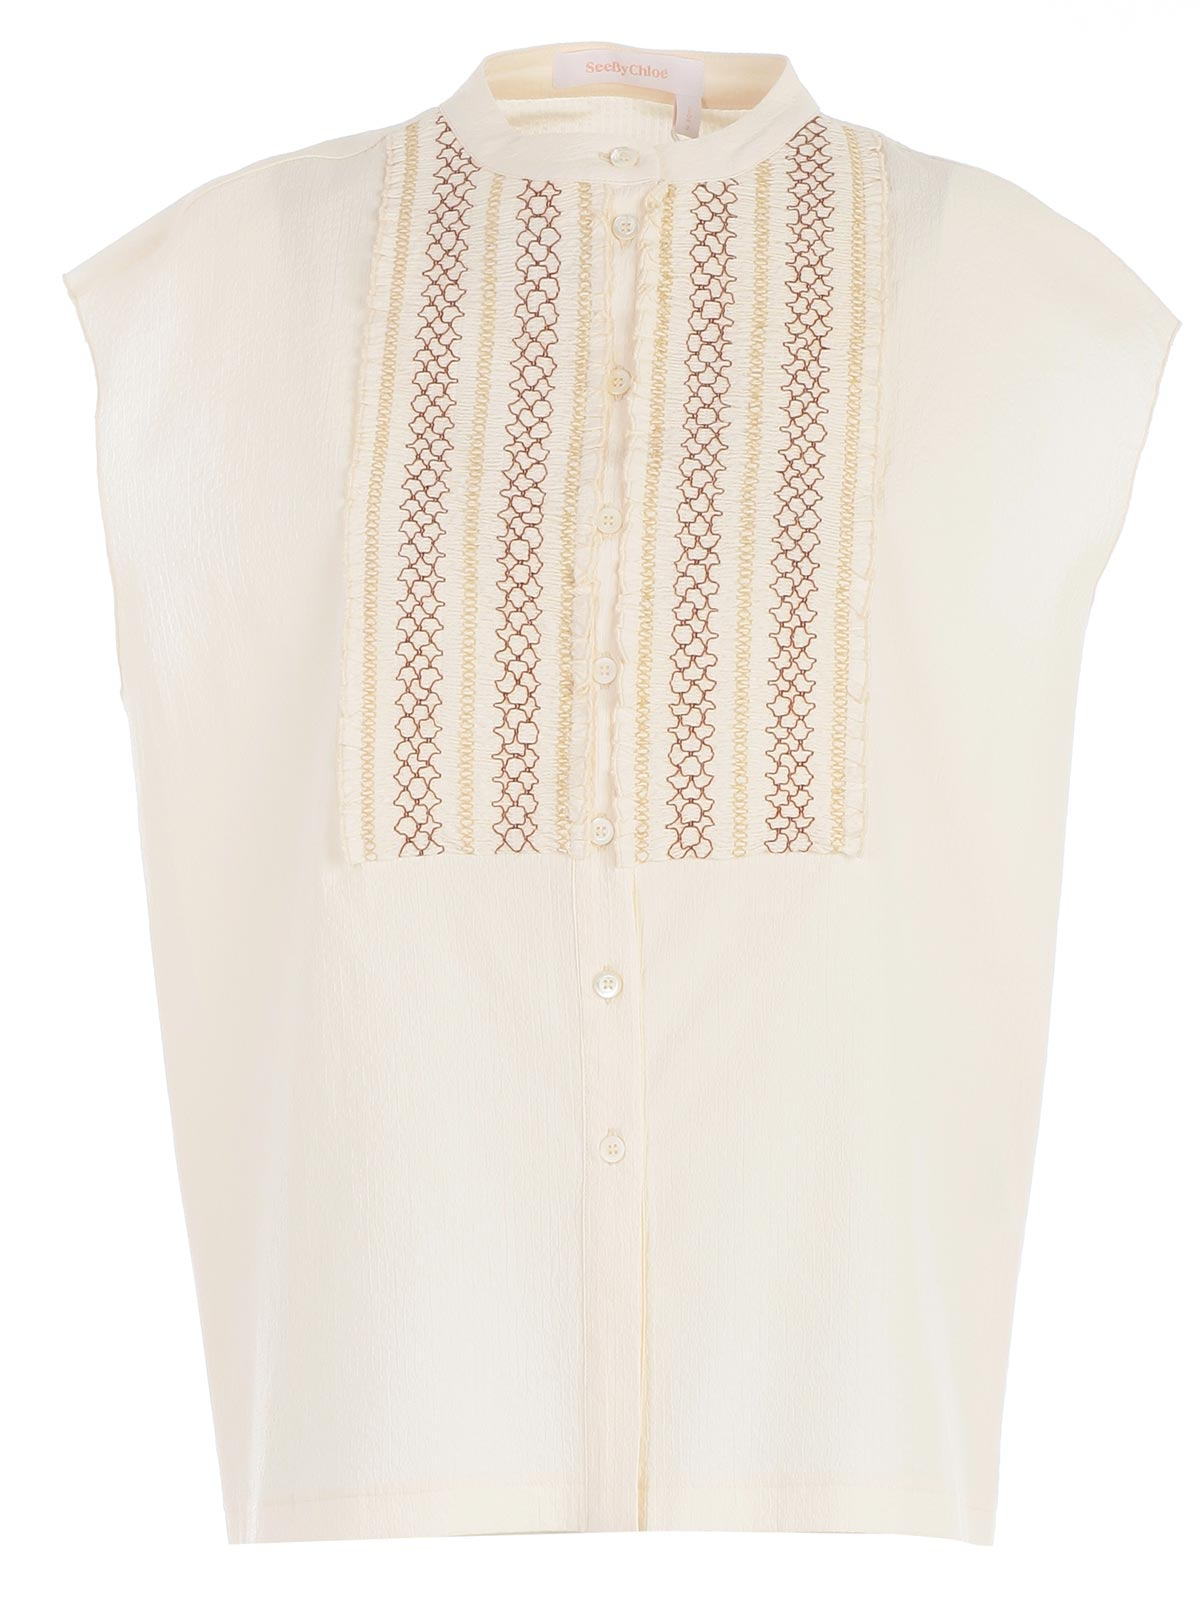 Picture of Seebychloe Top